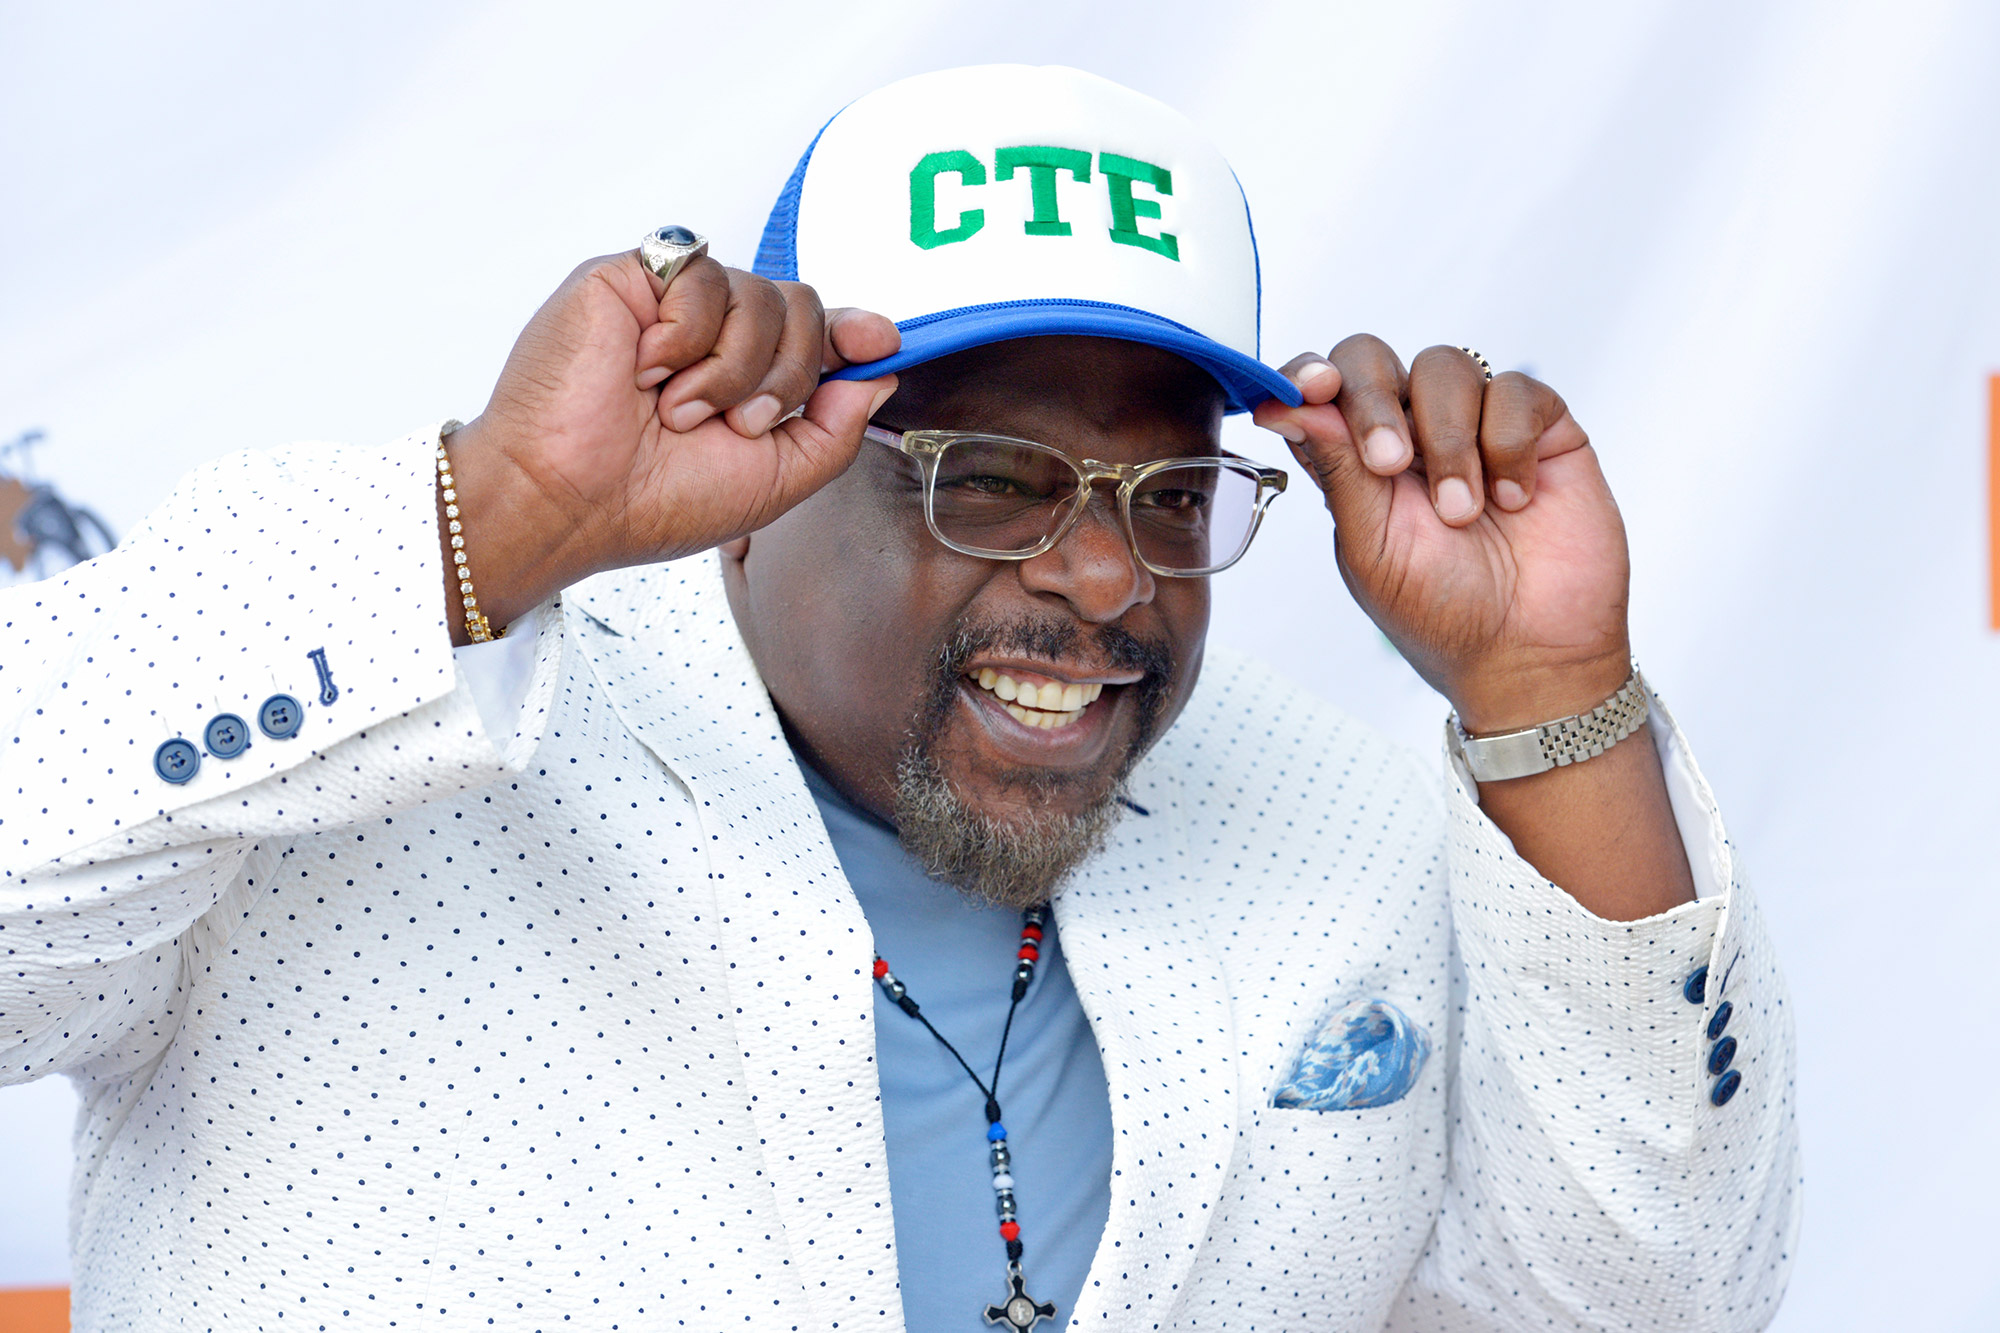 Cedric The Entertainer attends the 8th annual Cedric The Entertainer Golf Classic Lexus VIP pairings party celebration at Bogie's on August 15, 2021 in Westlake Village, California